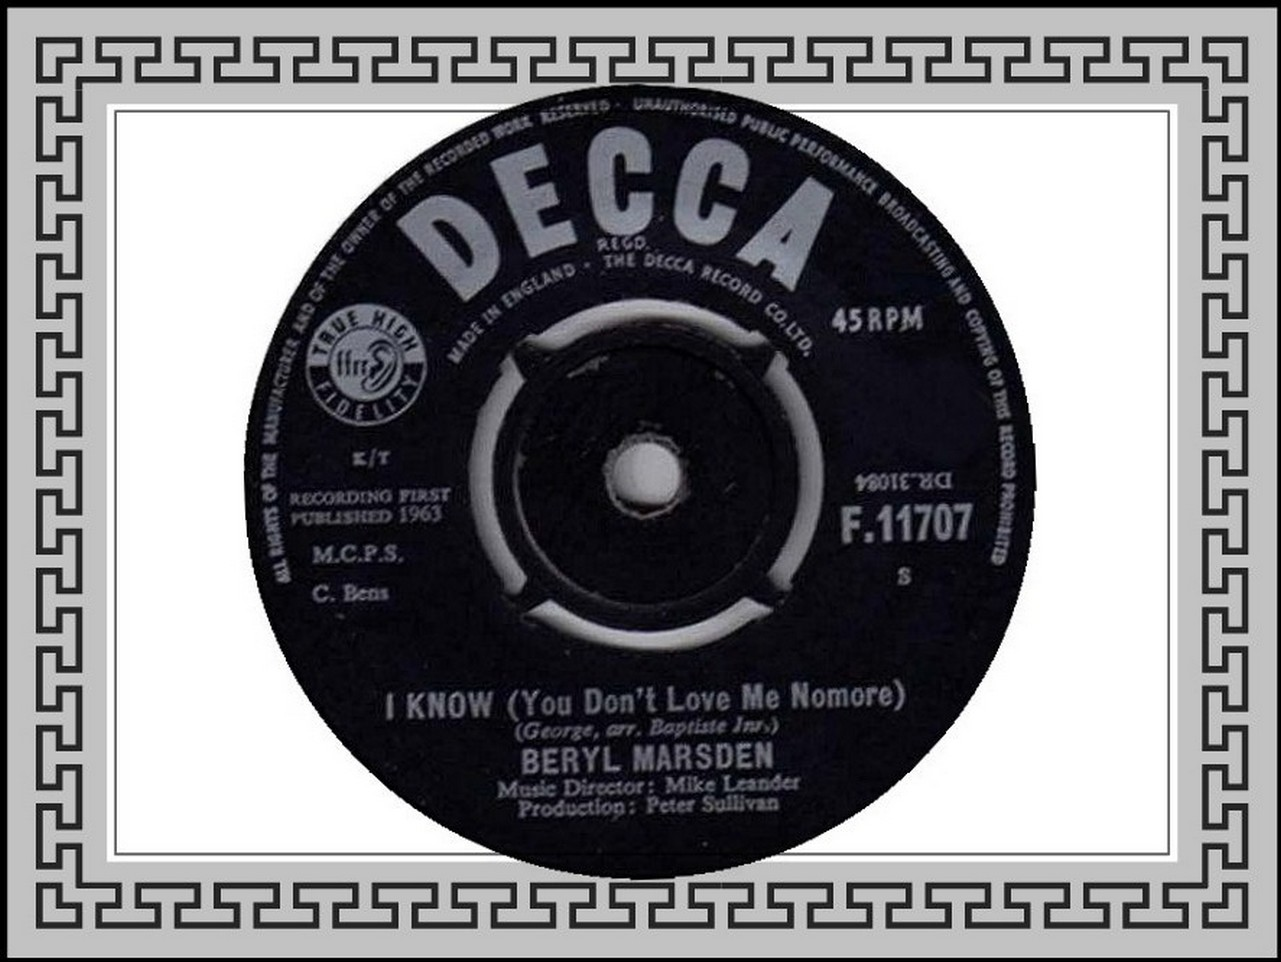 http://2.bp.blogspot.com/-VFob3LIzzJY/T48FwALUF1I/AAAAAAAATps/SMEZ2BlWSW0/s1600/beryl-marsden-i-know-you-dont-love-me-no-more-decca.jpg